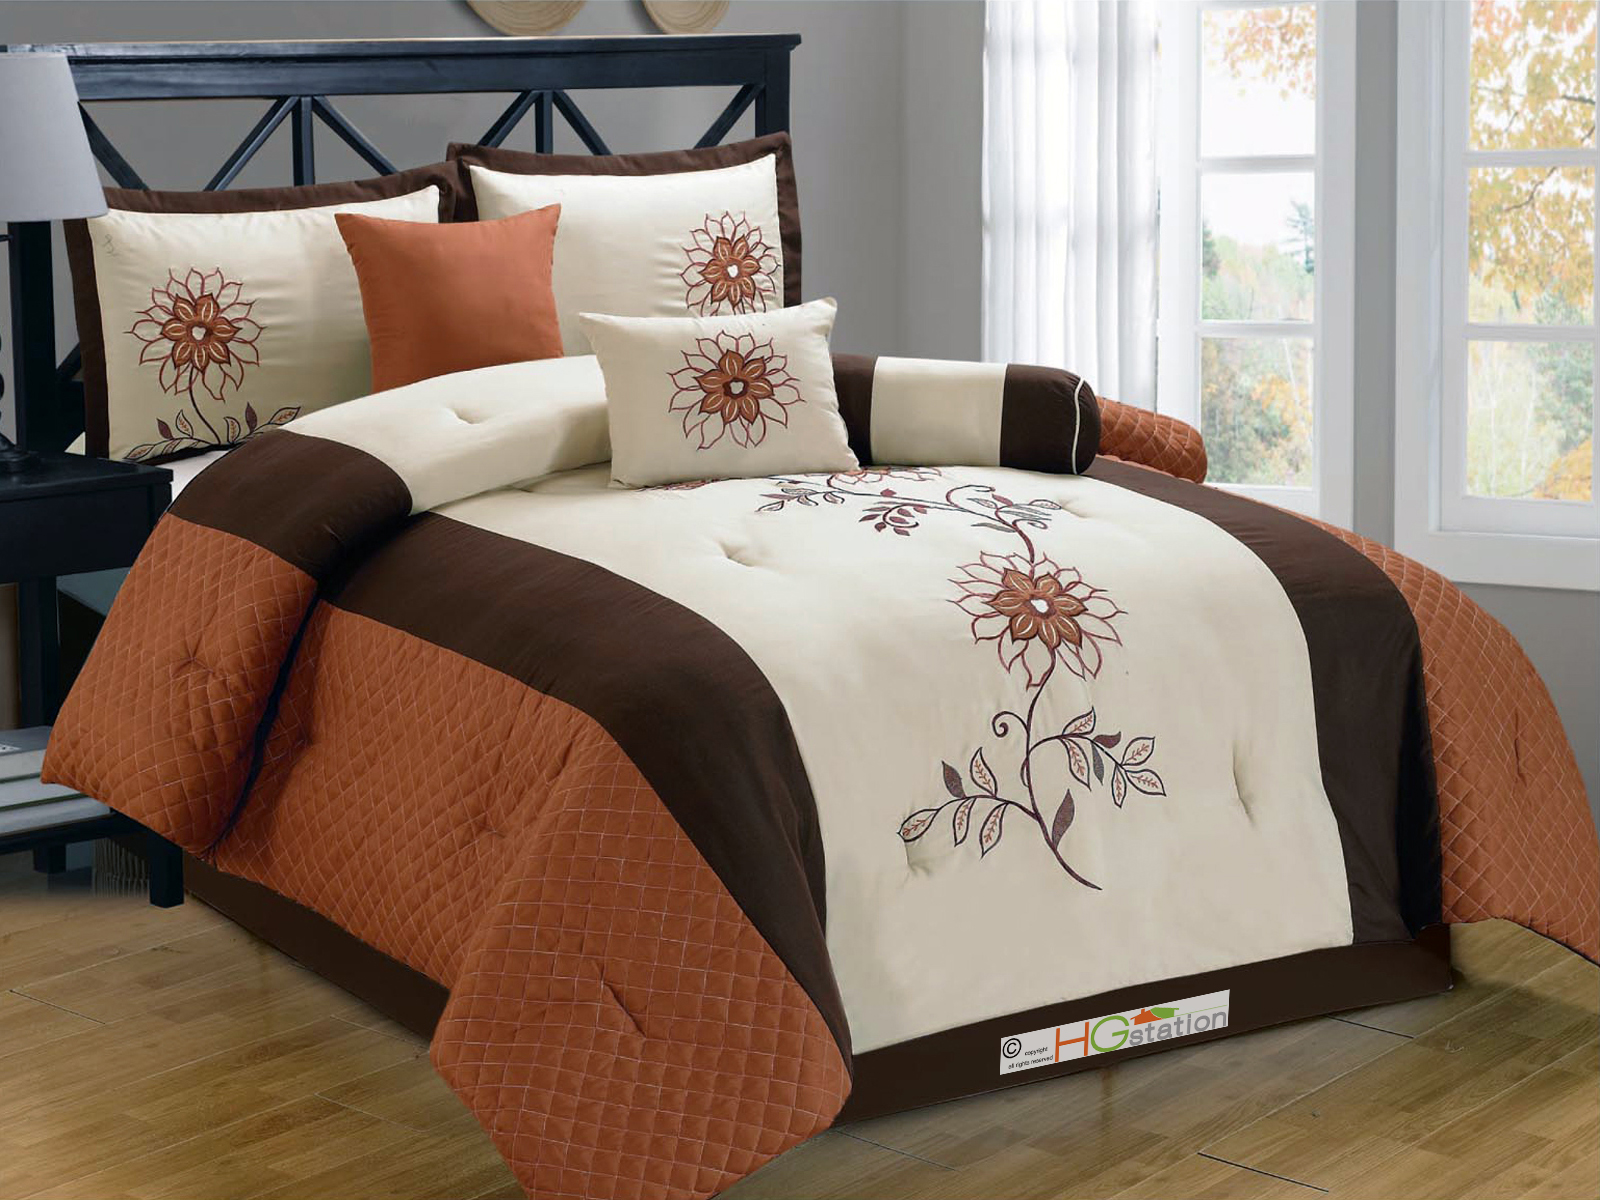 Details about 11-Pc Quilted Sunflower Embroidery Comforter Curtain Set ...